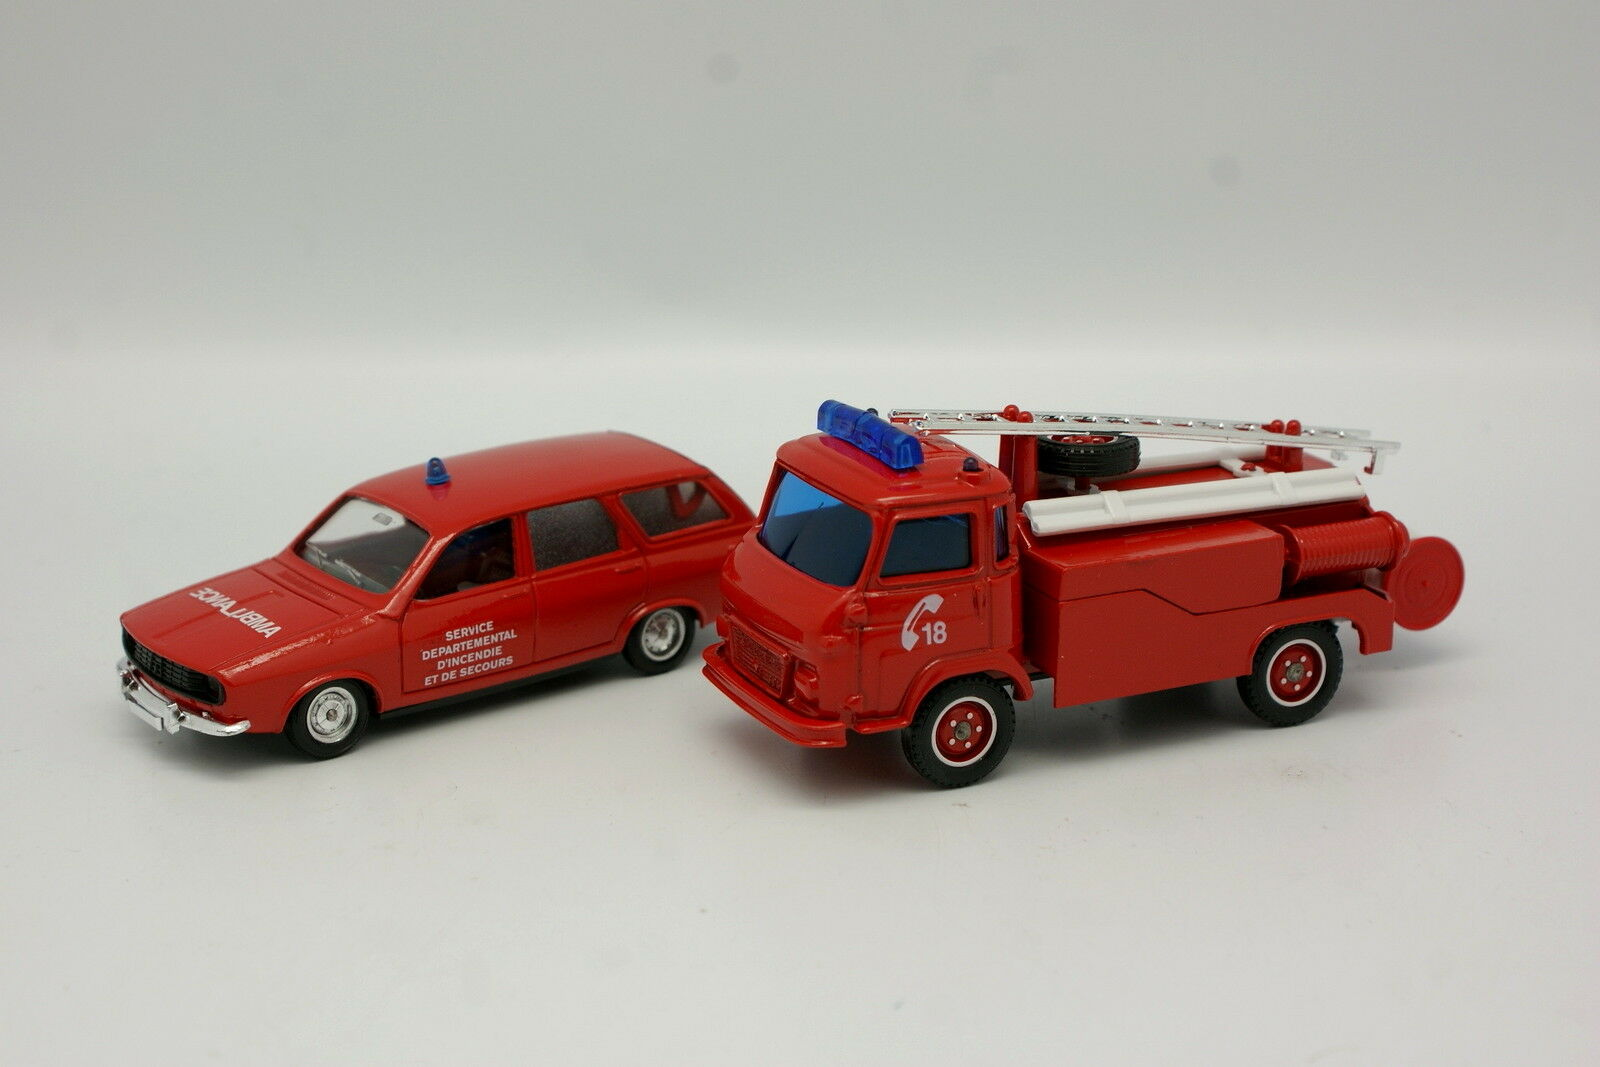 Solido Solido Solido 1 43 and 1 50 - Set of 2 Renault 12 Break Firefighters Saviem SG2 Scale 175c7c